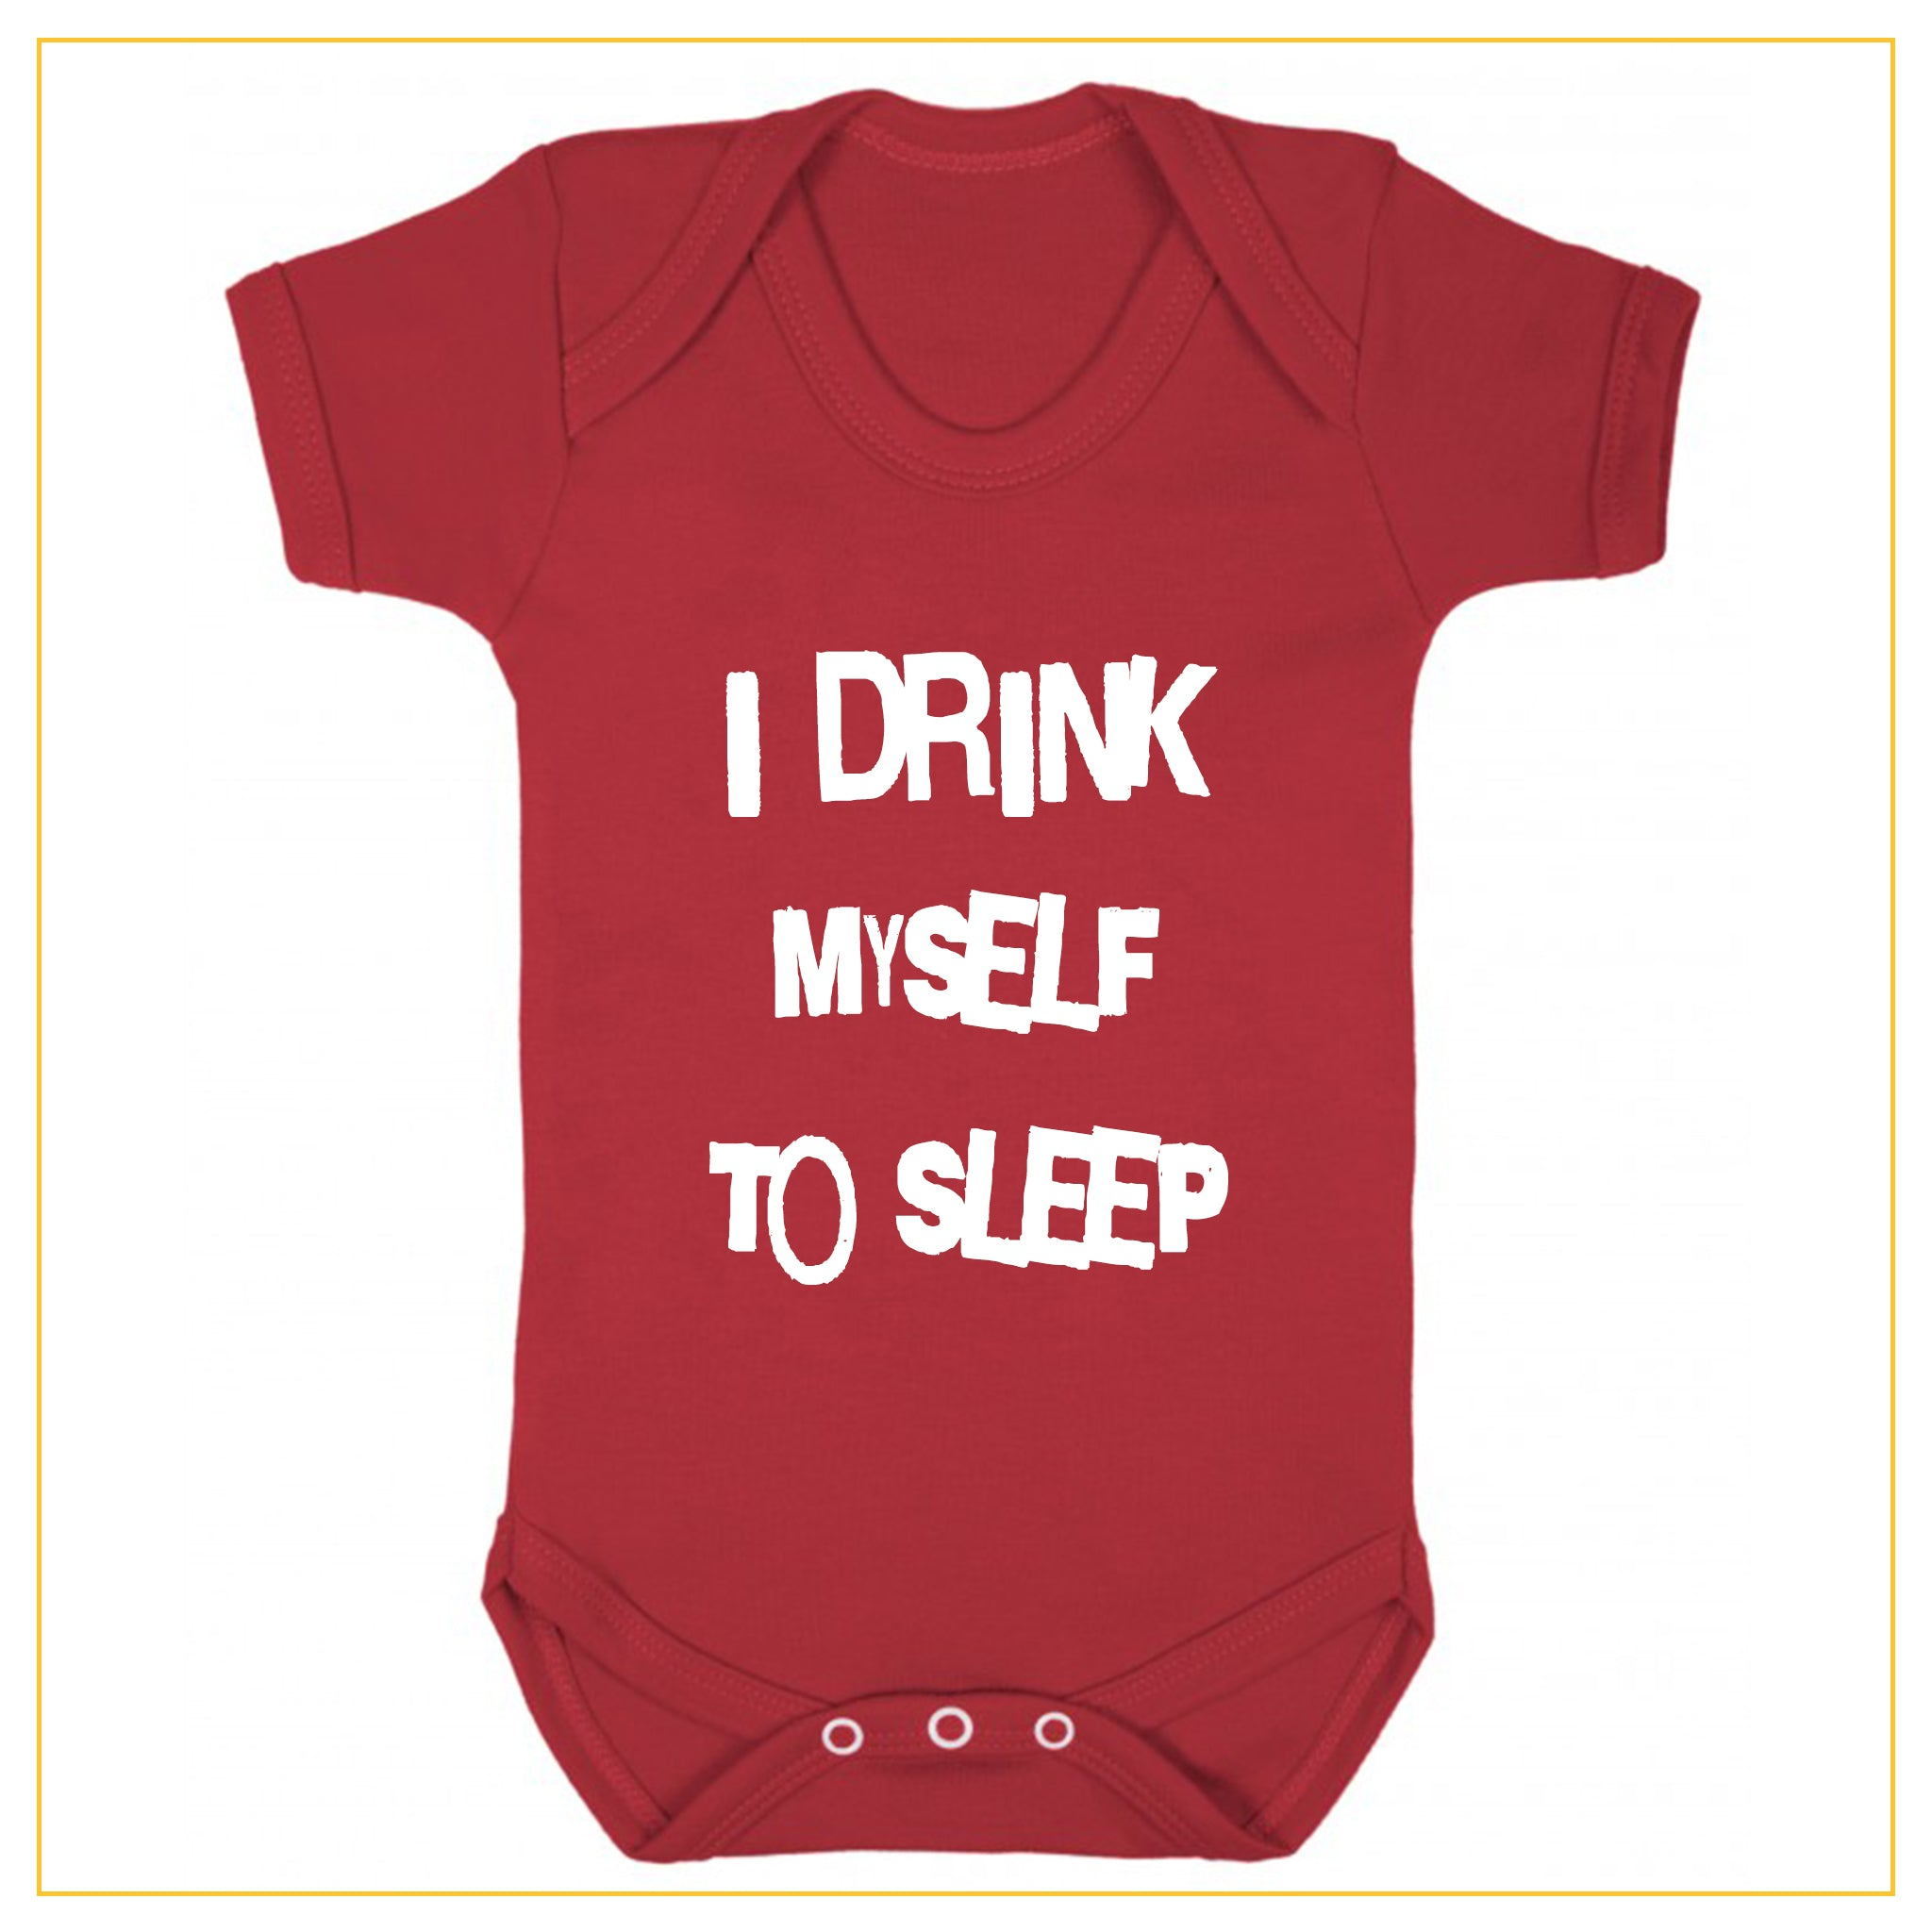 I drink myself to sleep baby onesie in red